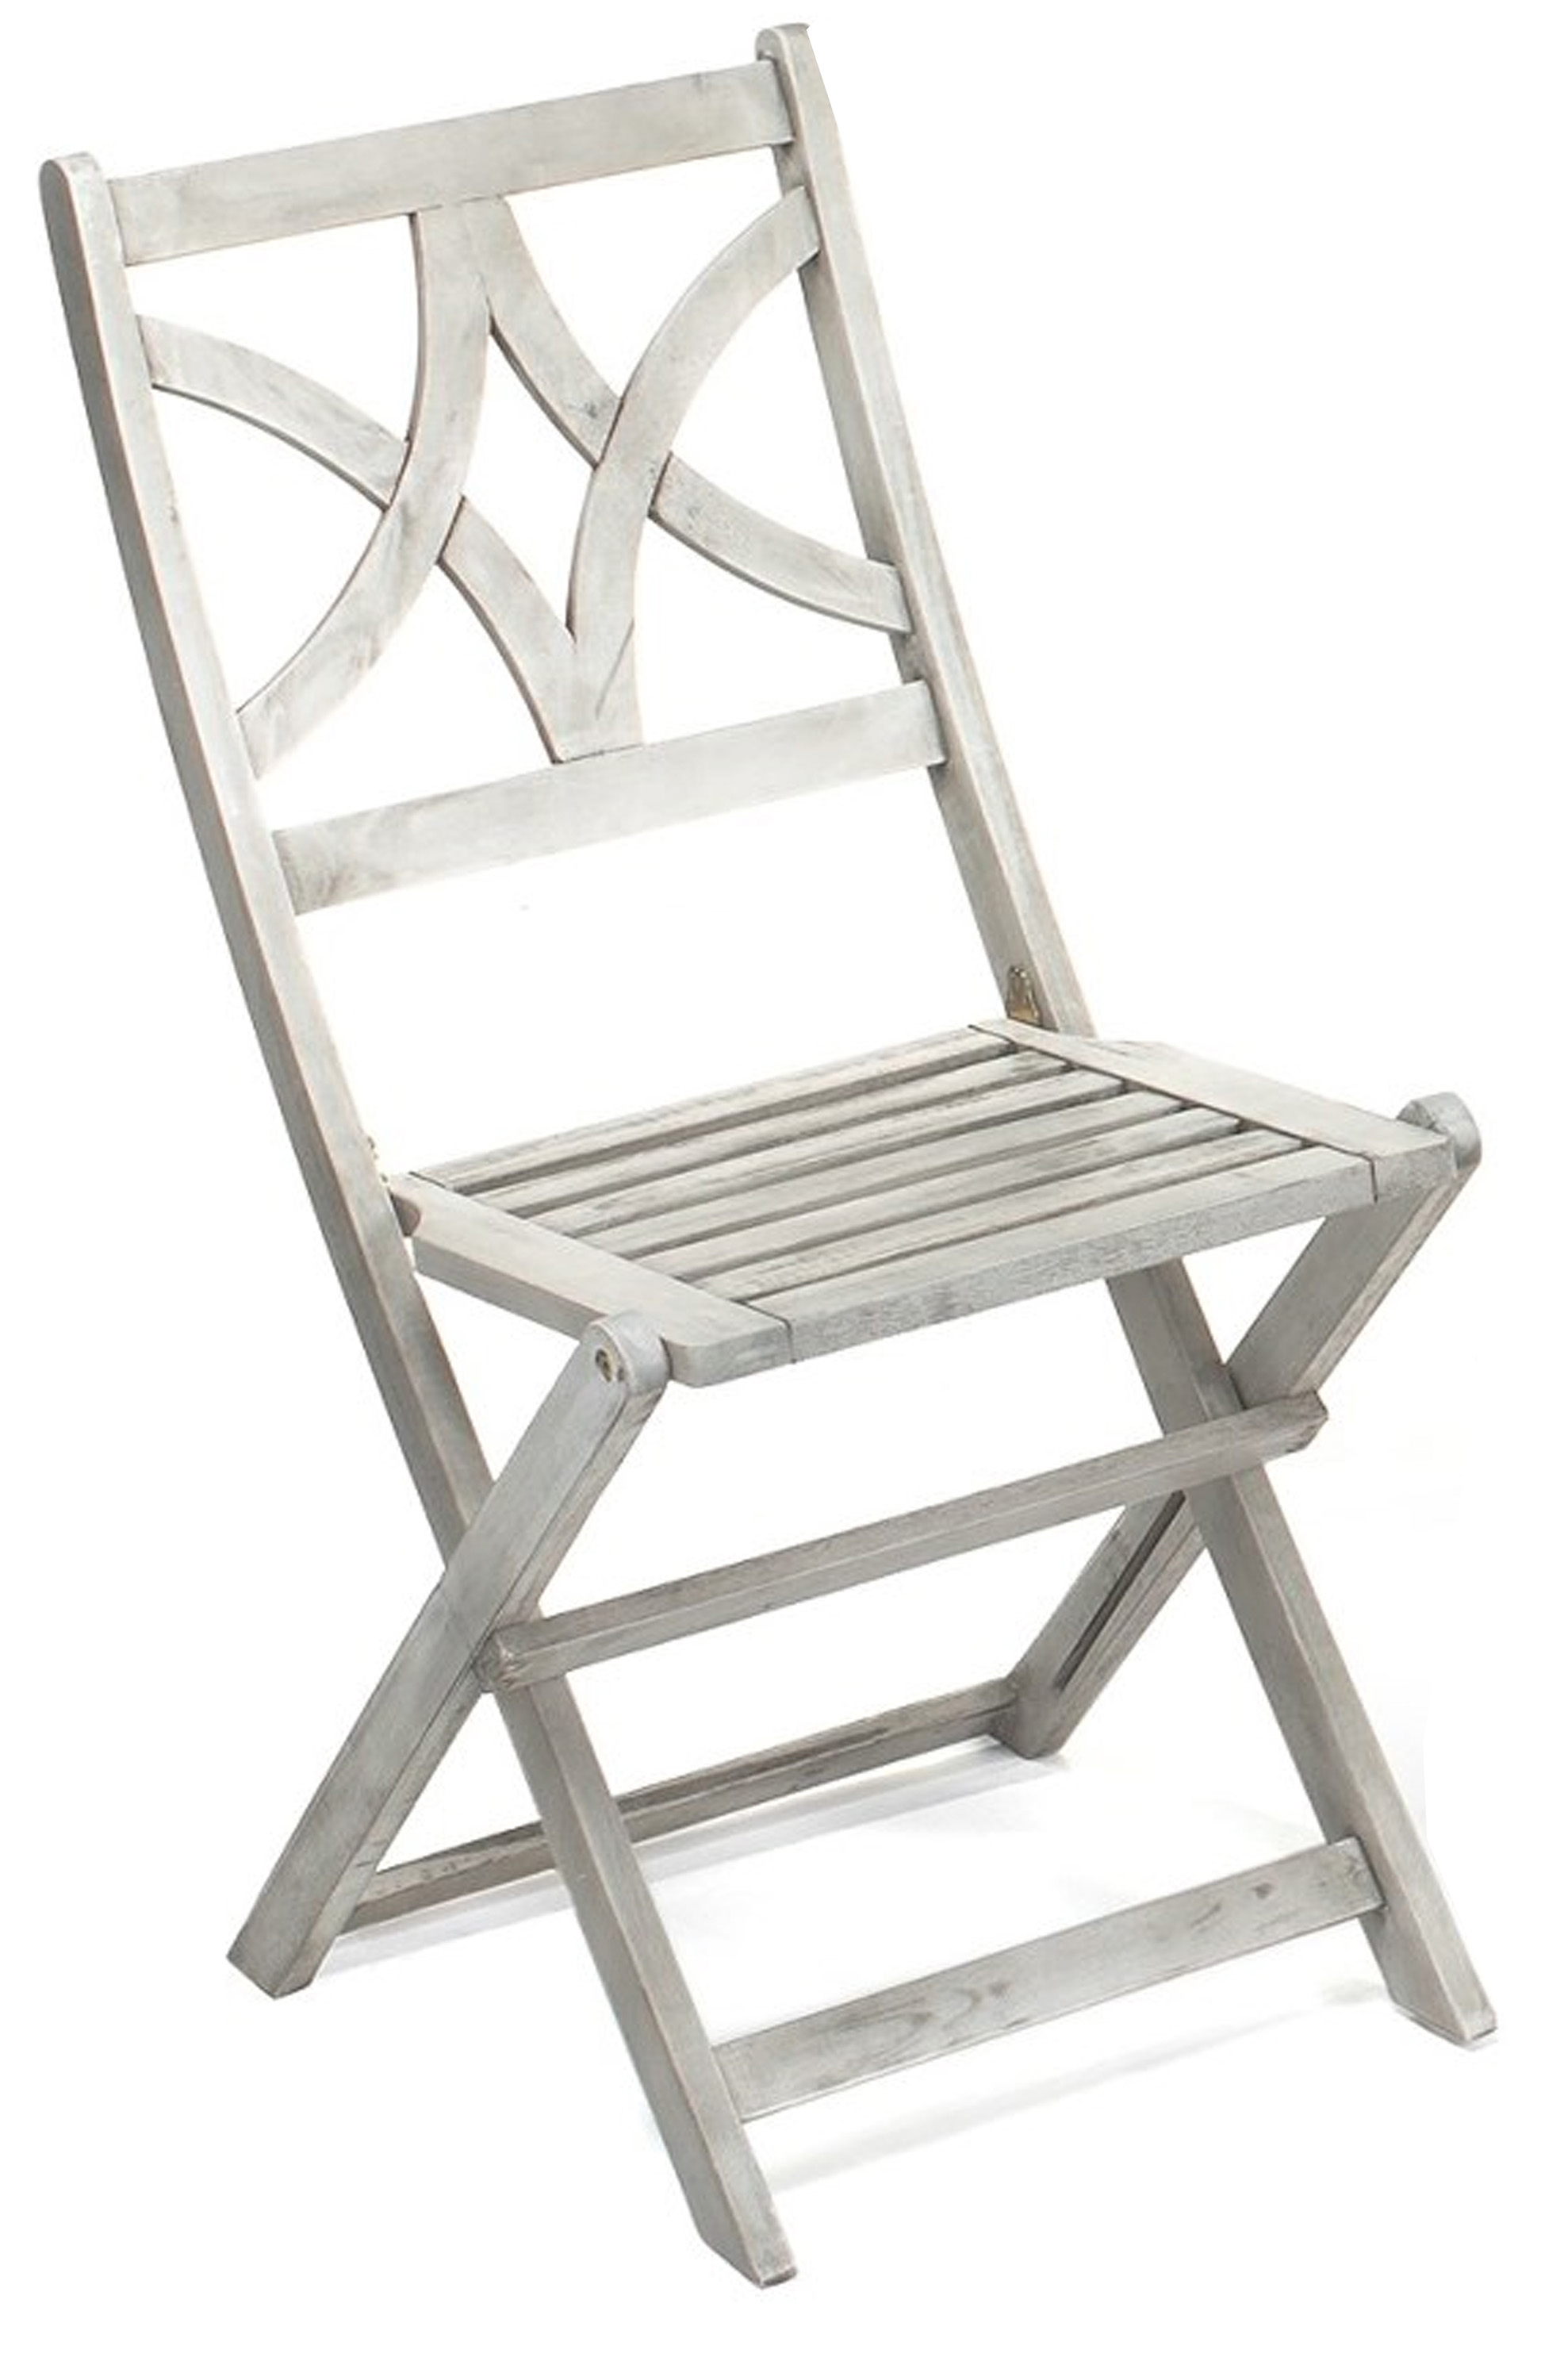 Jimco Outdoor Folding Bistro Chairs in graywash finishes